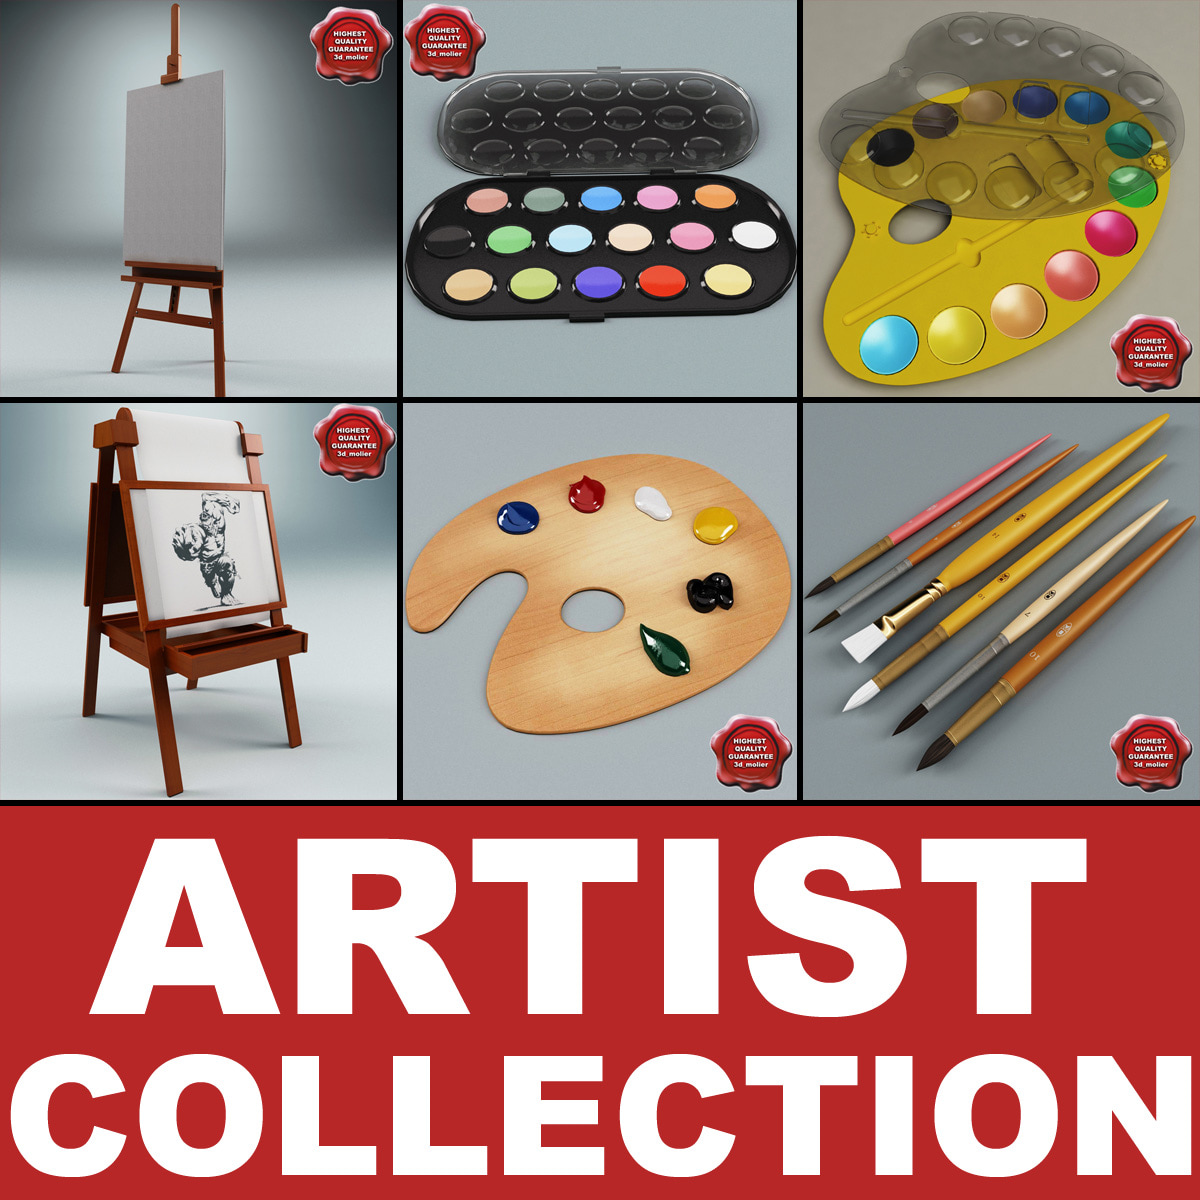 Artist_Collection_00.jpg